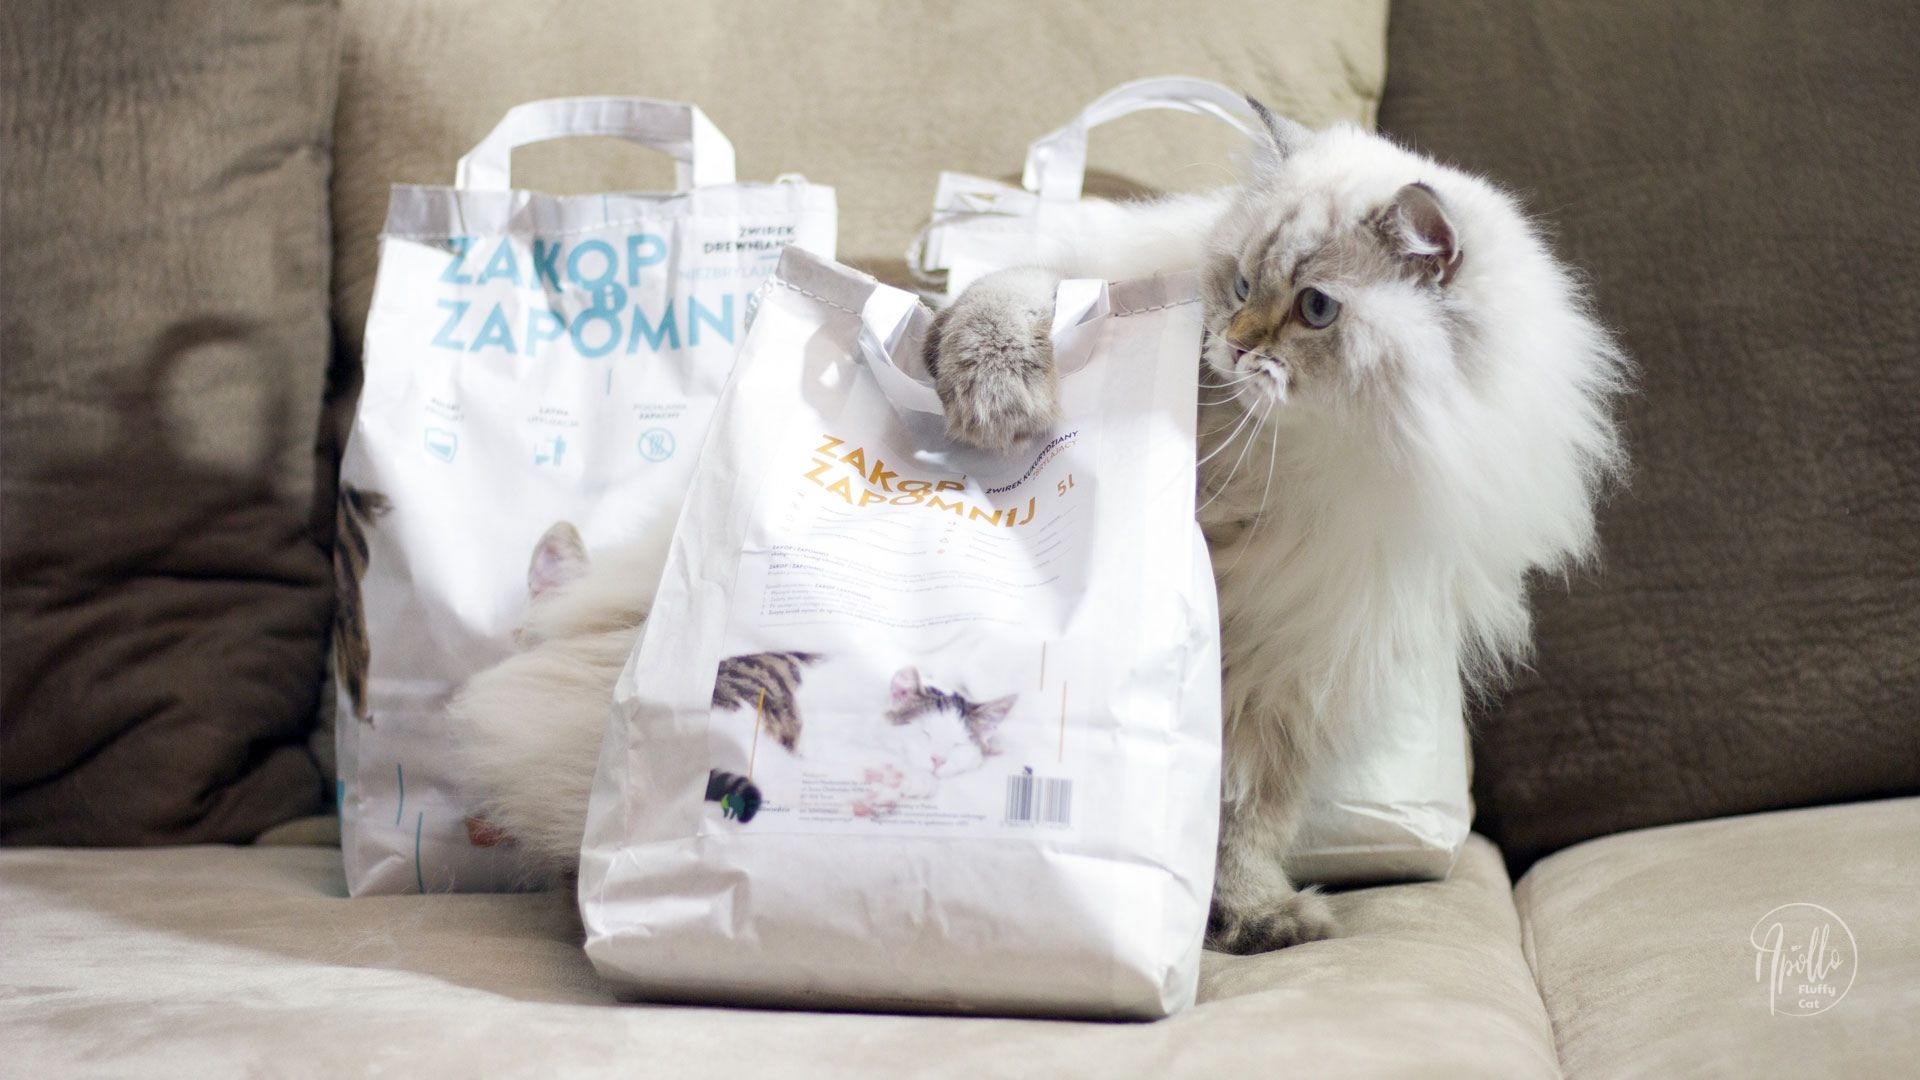 Eco cat litter Zakop i Zapomnij